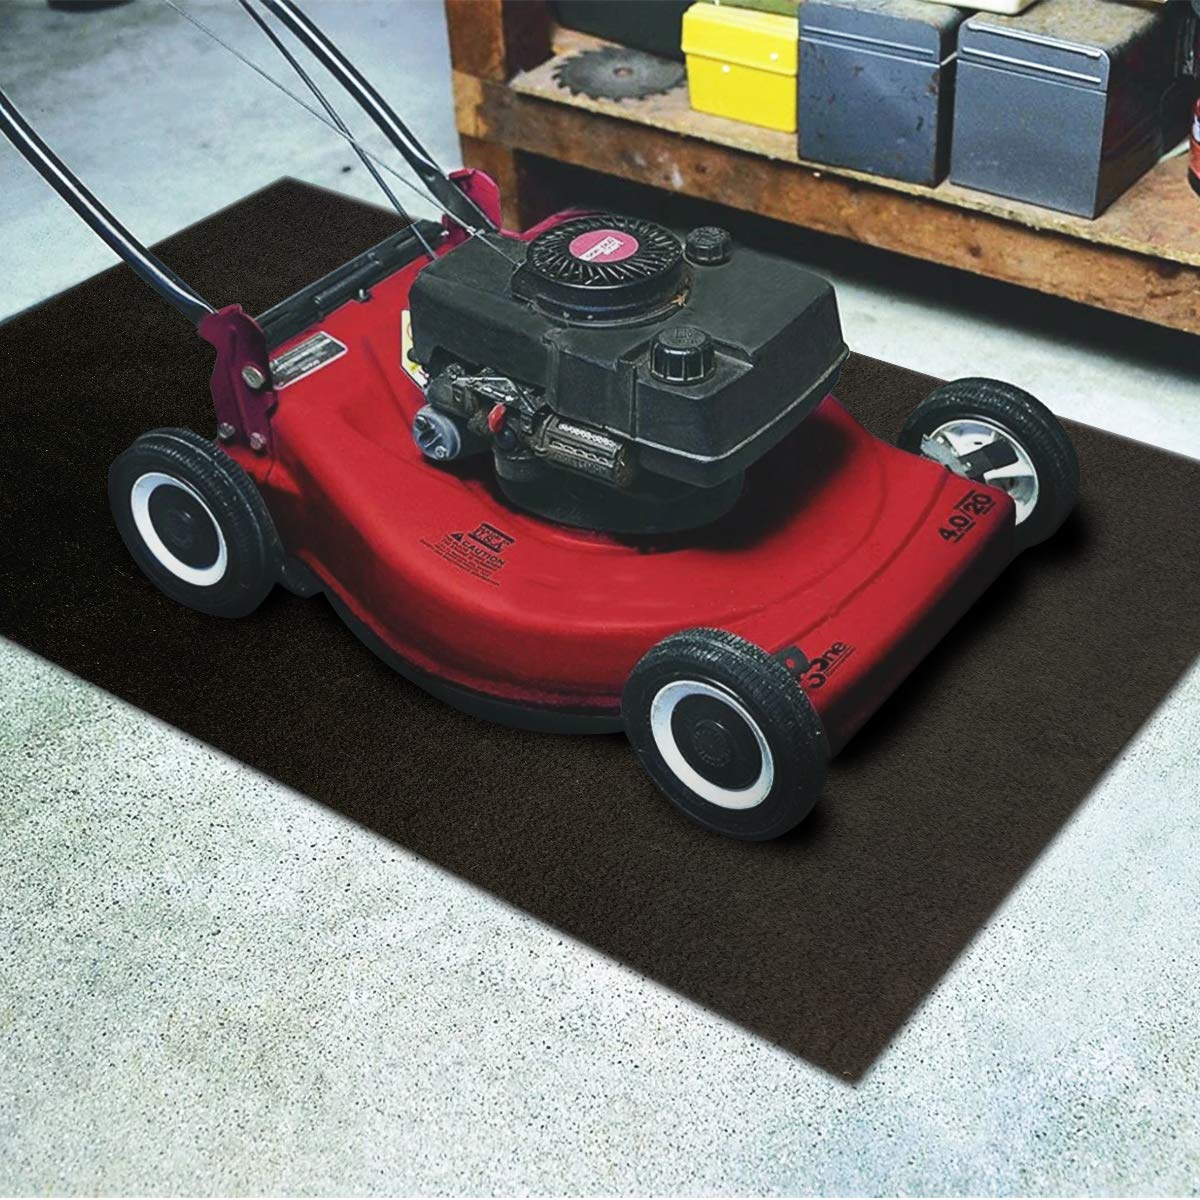 LINLA Premium Absorbent Oil Mat Contains Liquid Garage Floor Mat, Reusable, Washable, Protects Garage Floor or Driveway Surface, Shop,Parking, 30x39 inches